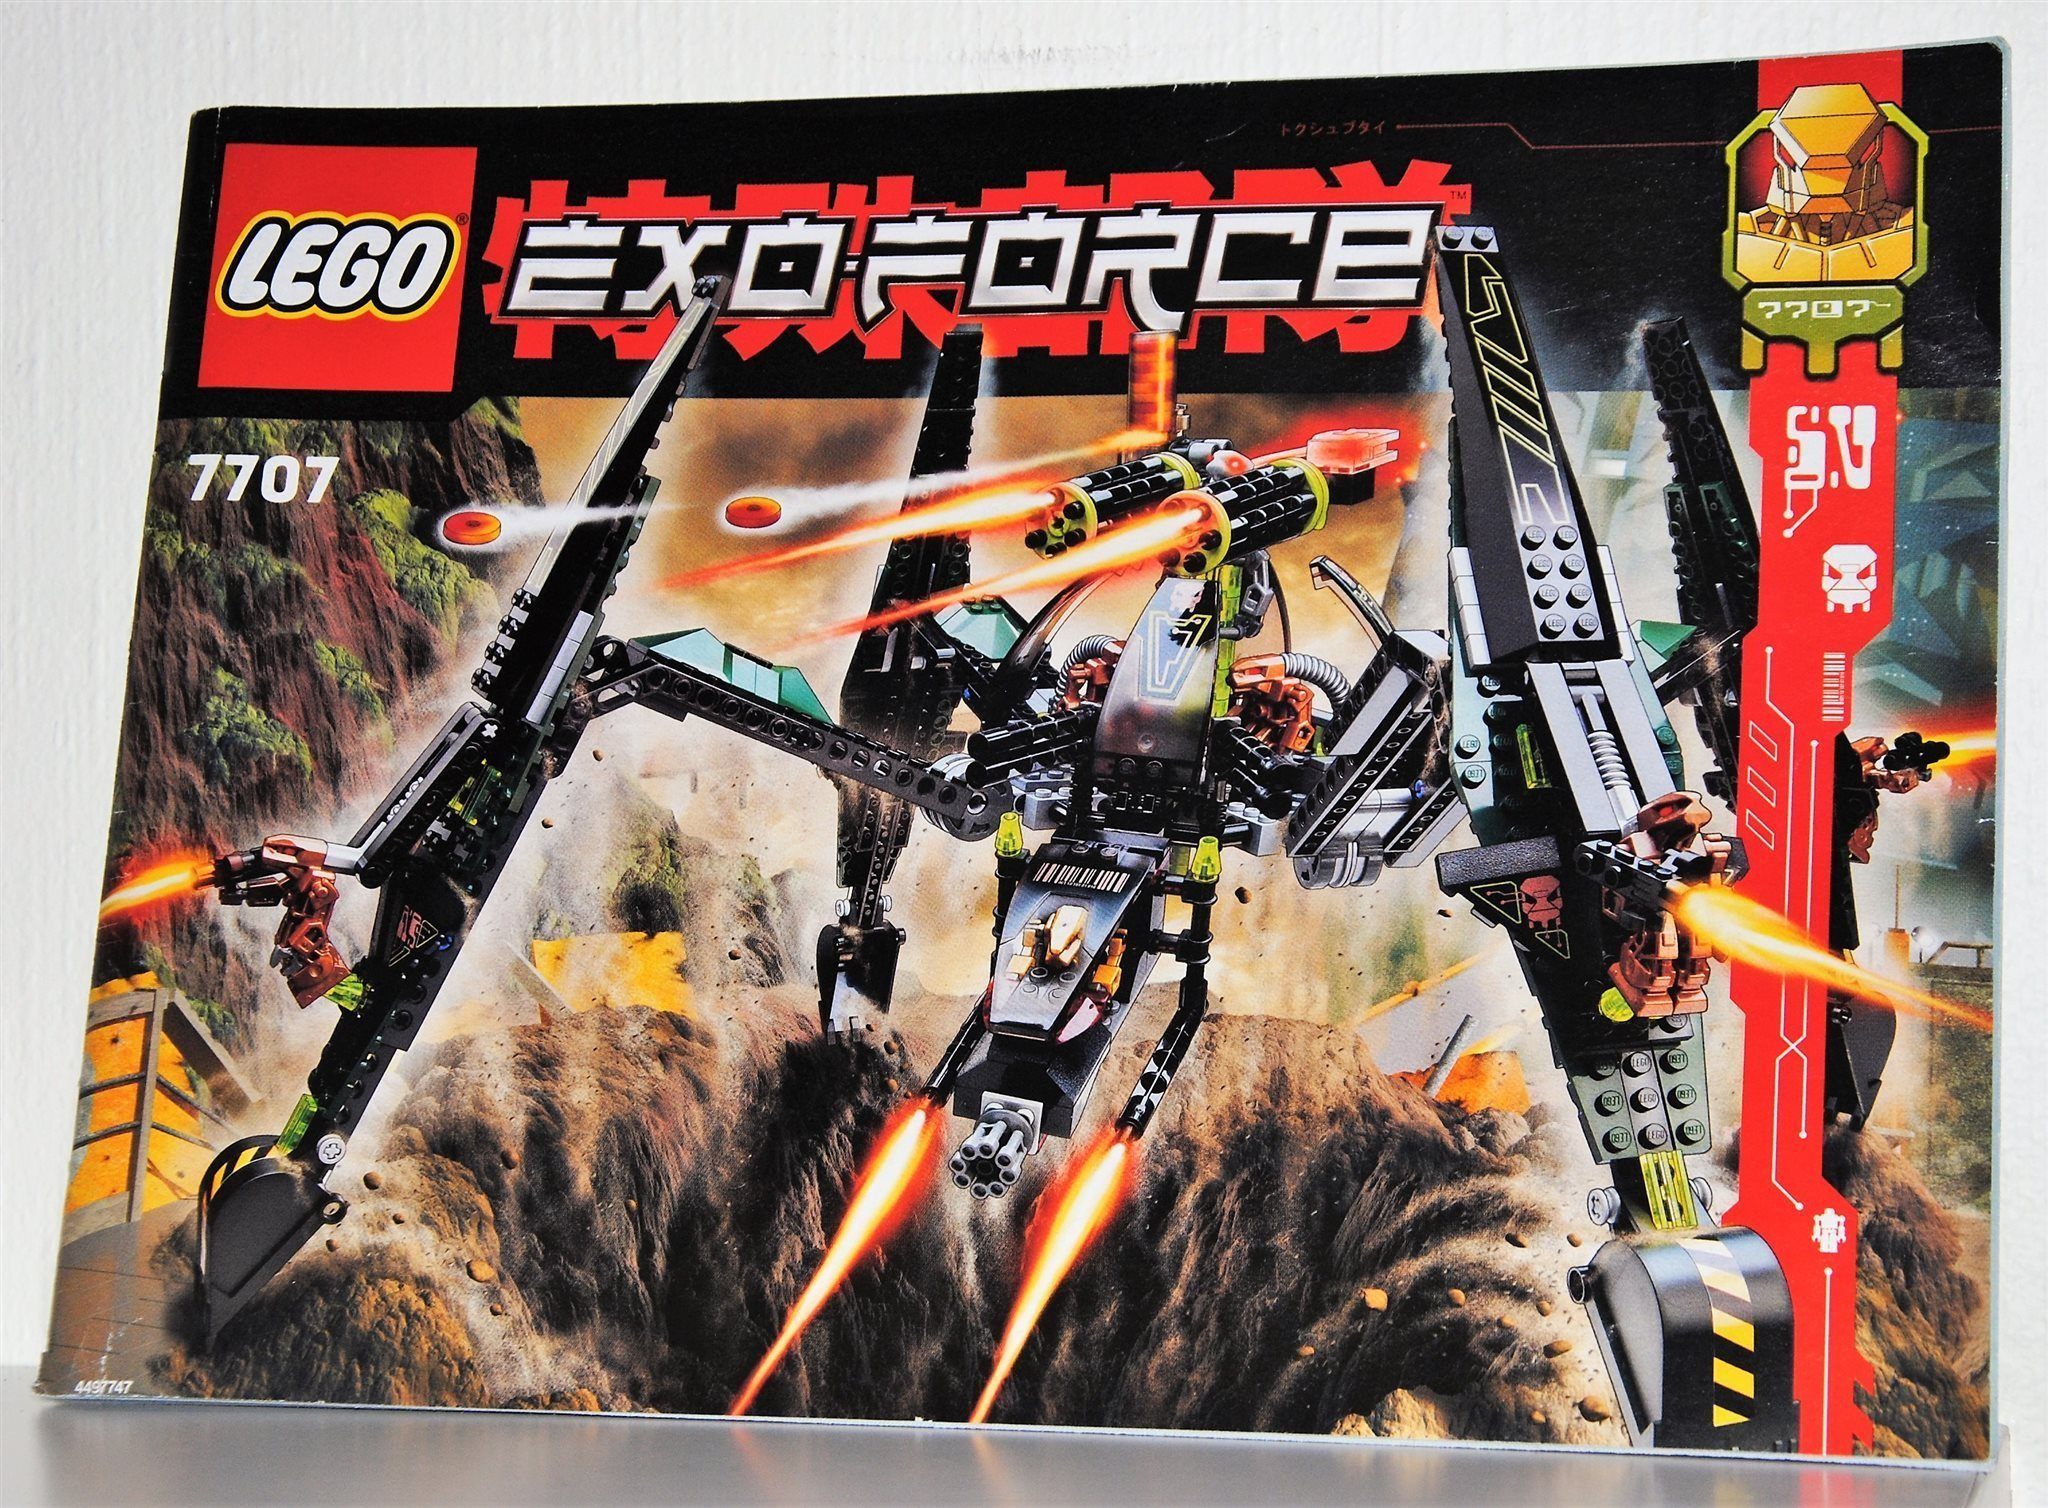 LEGO EXO-FORCE: 7707 STRIKING VENOM - KOMPLETT